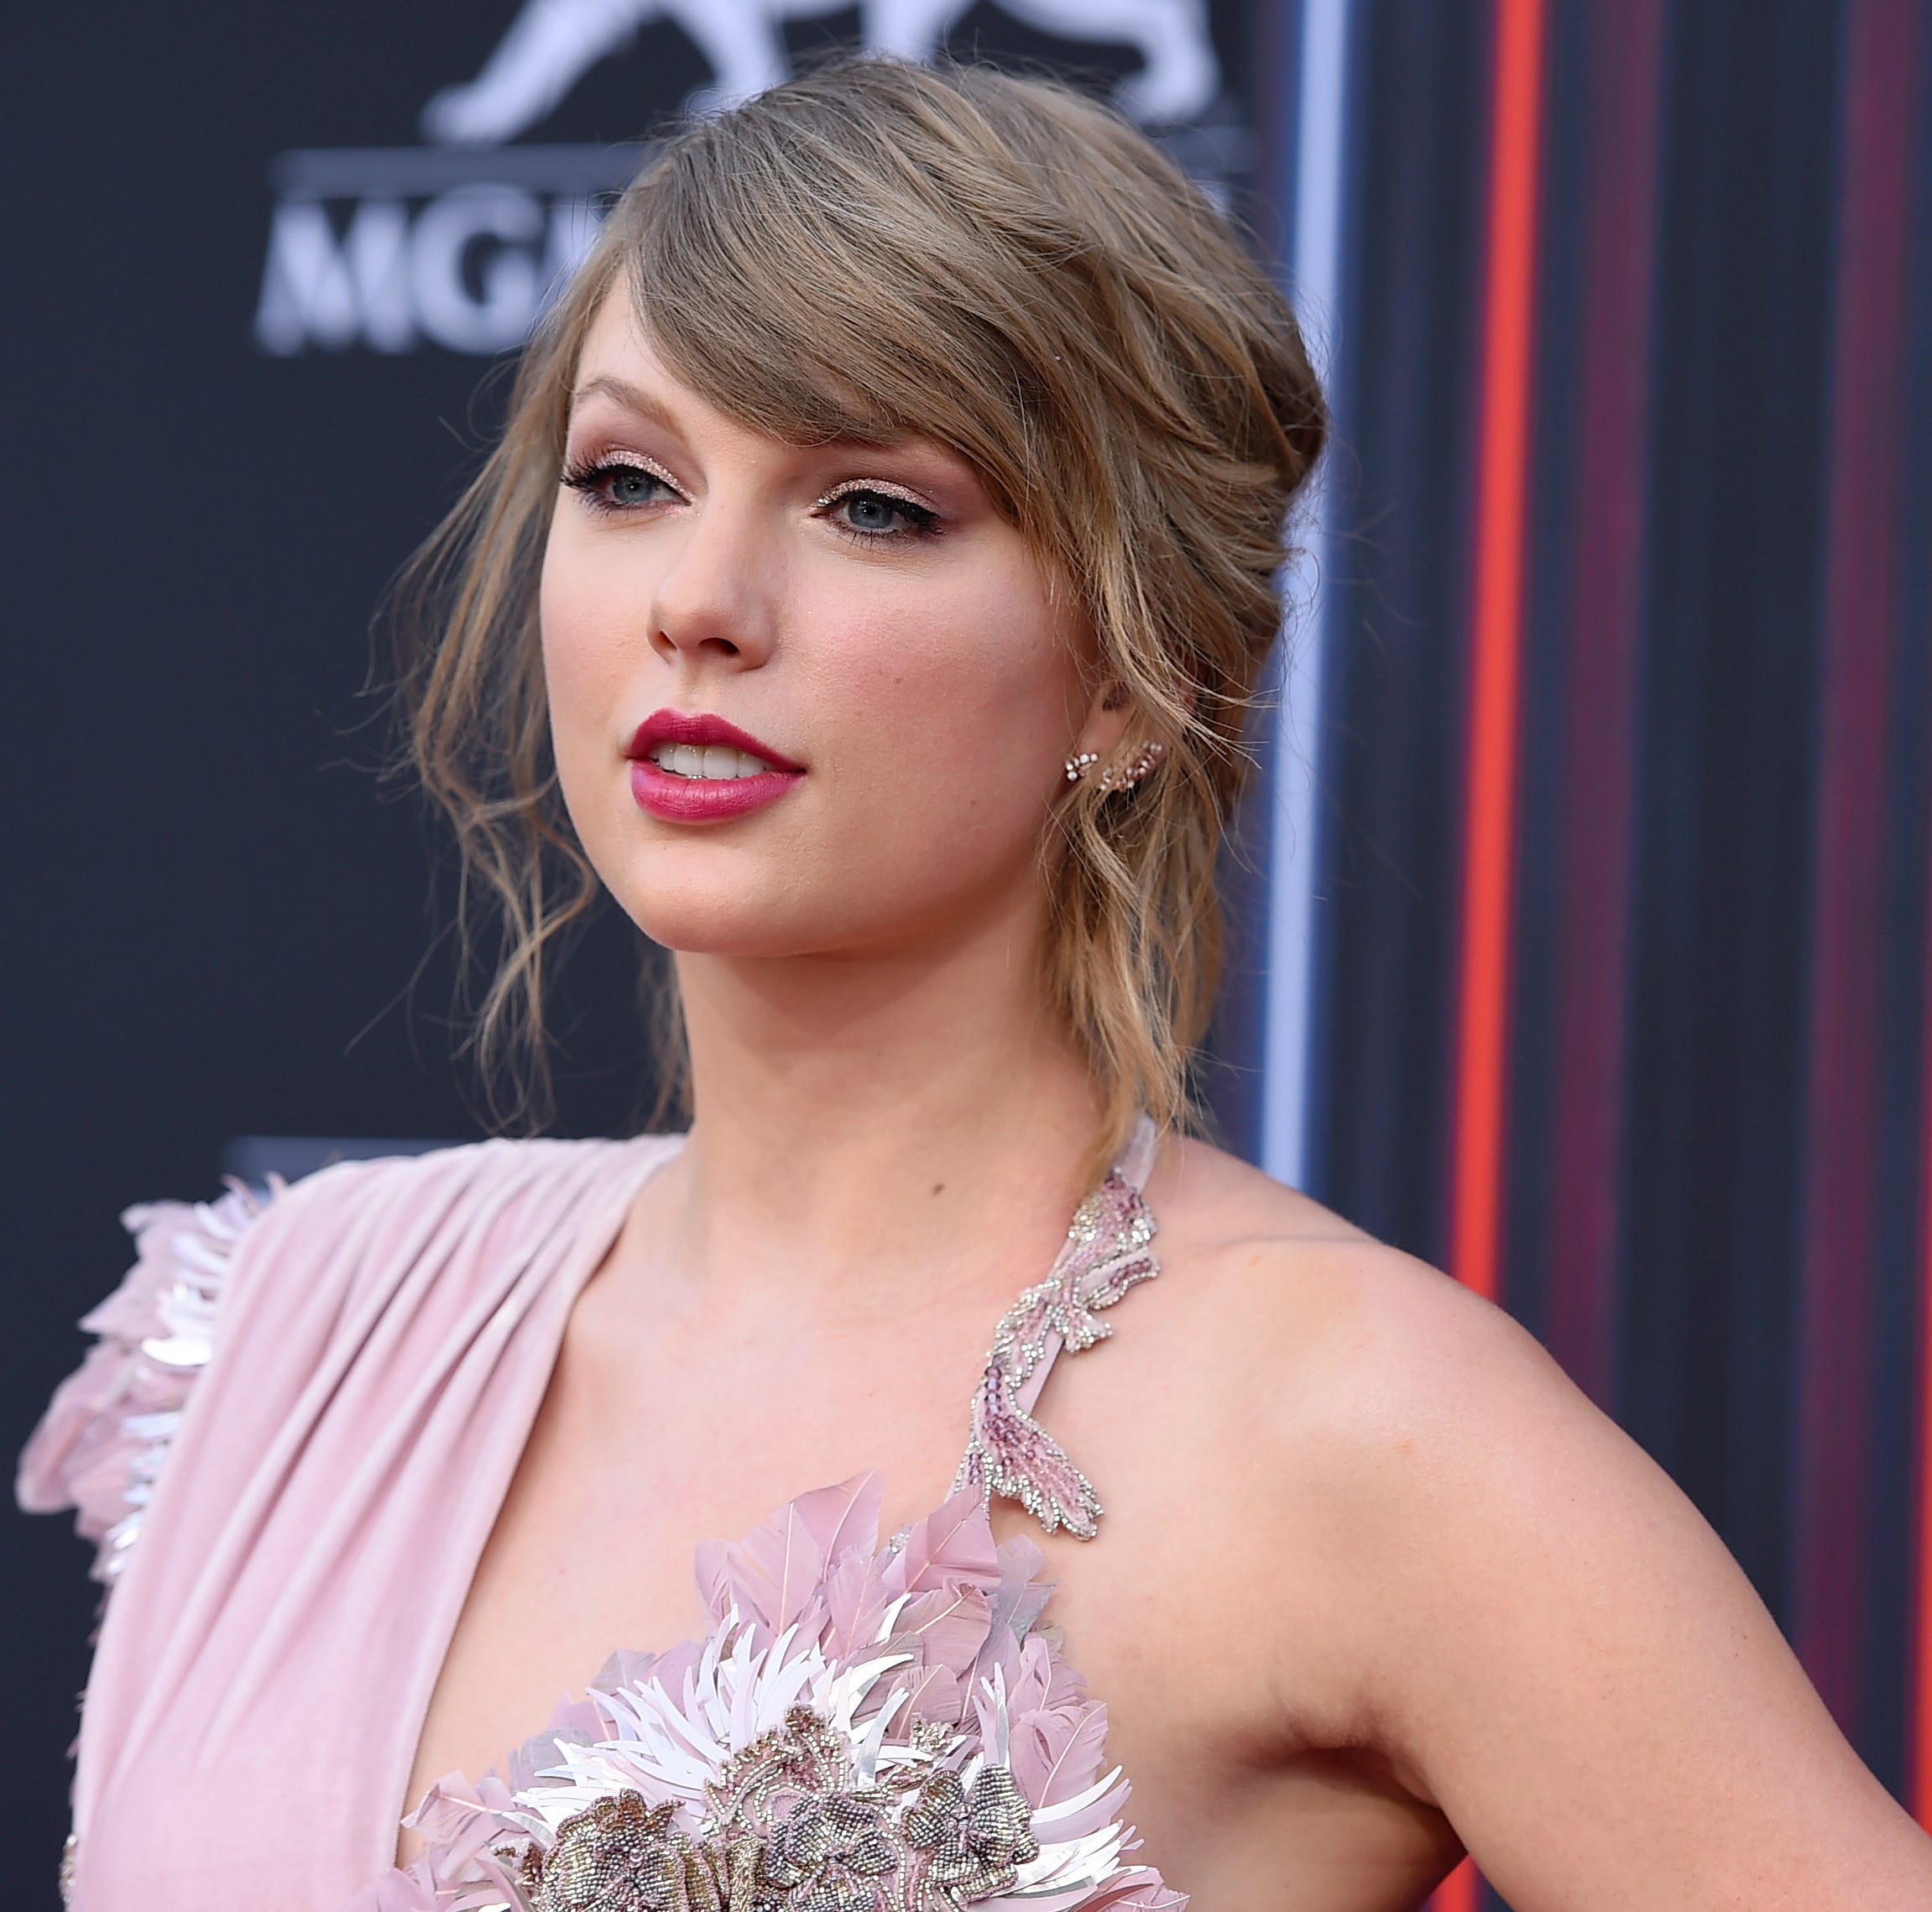 Taylor Swift takes on Trump-backed candidate Marsha Blackburn in Tenn. Senate race UPDATE